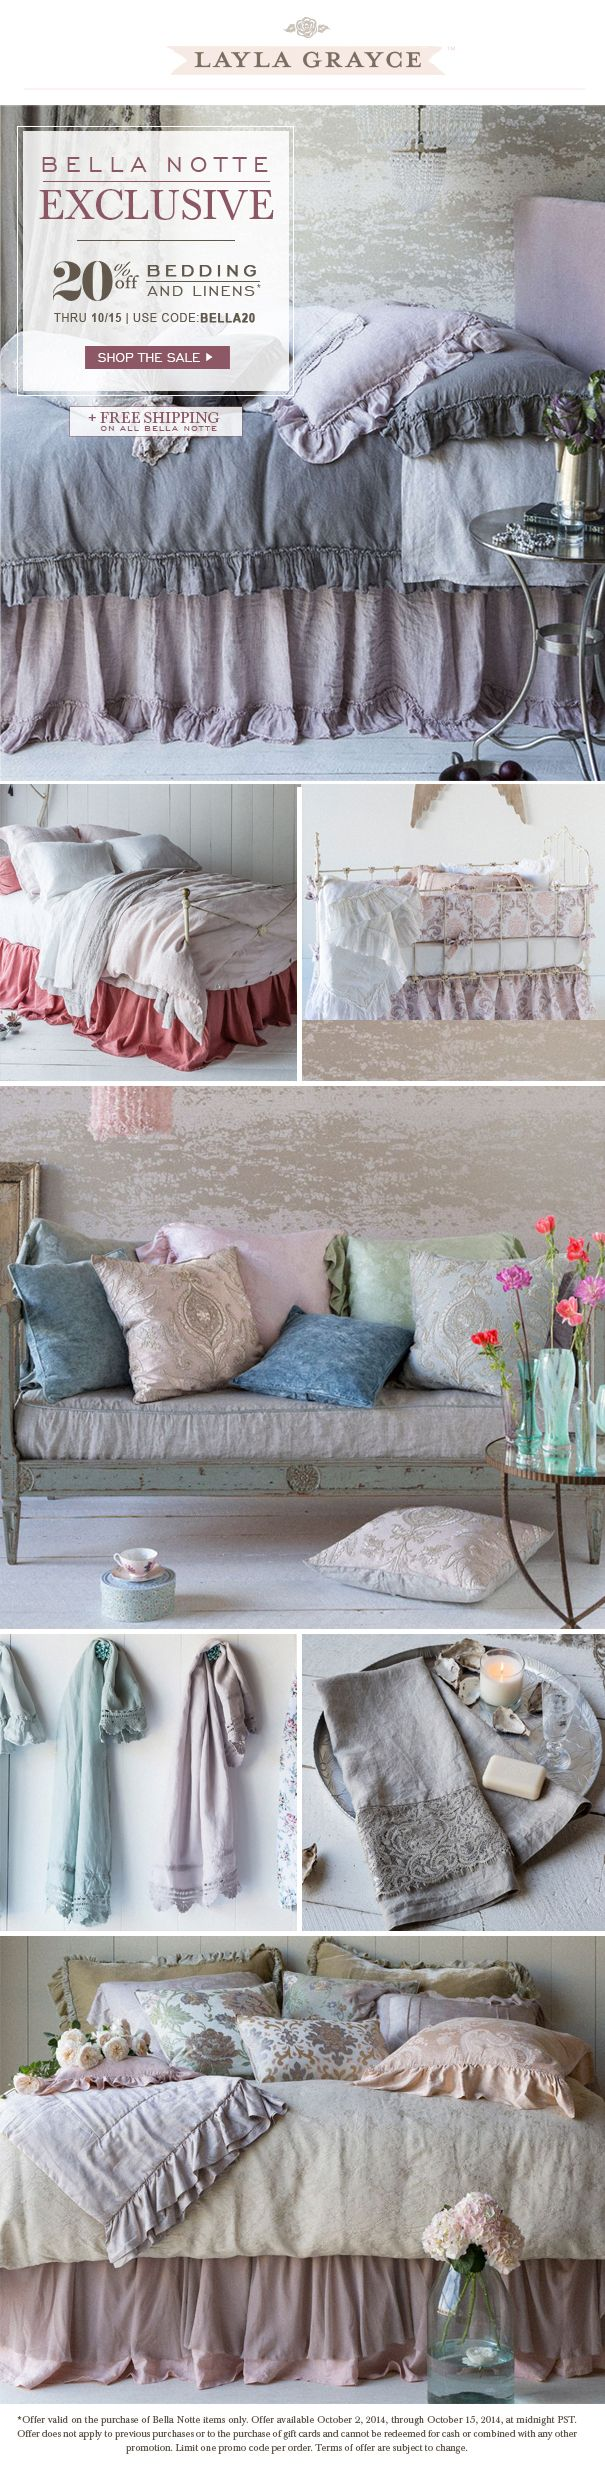 Bella Notte exclusive, 20% off Bedding and Linens thru 10/15 with code BELLA20. Happy shopping!